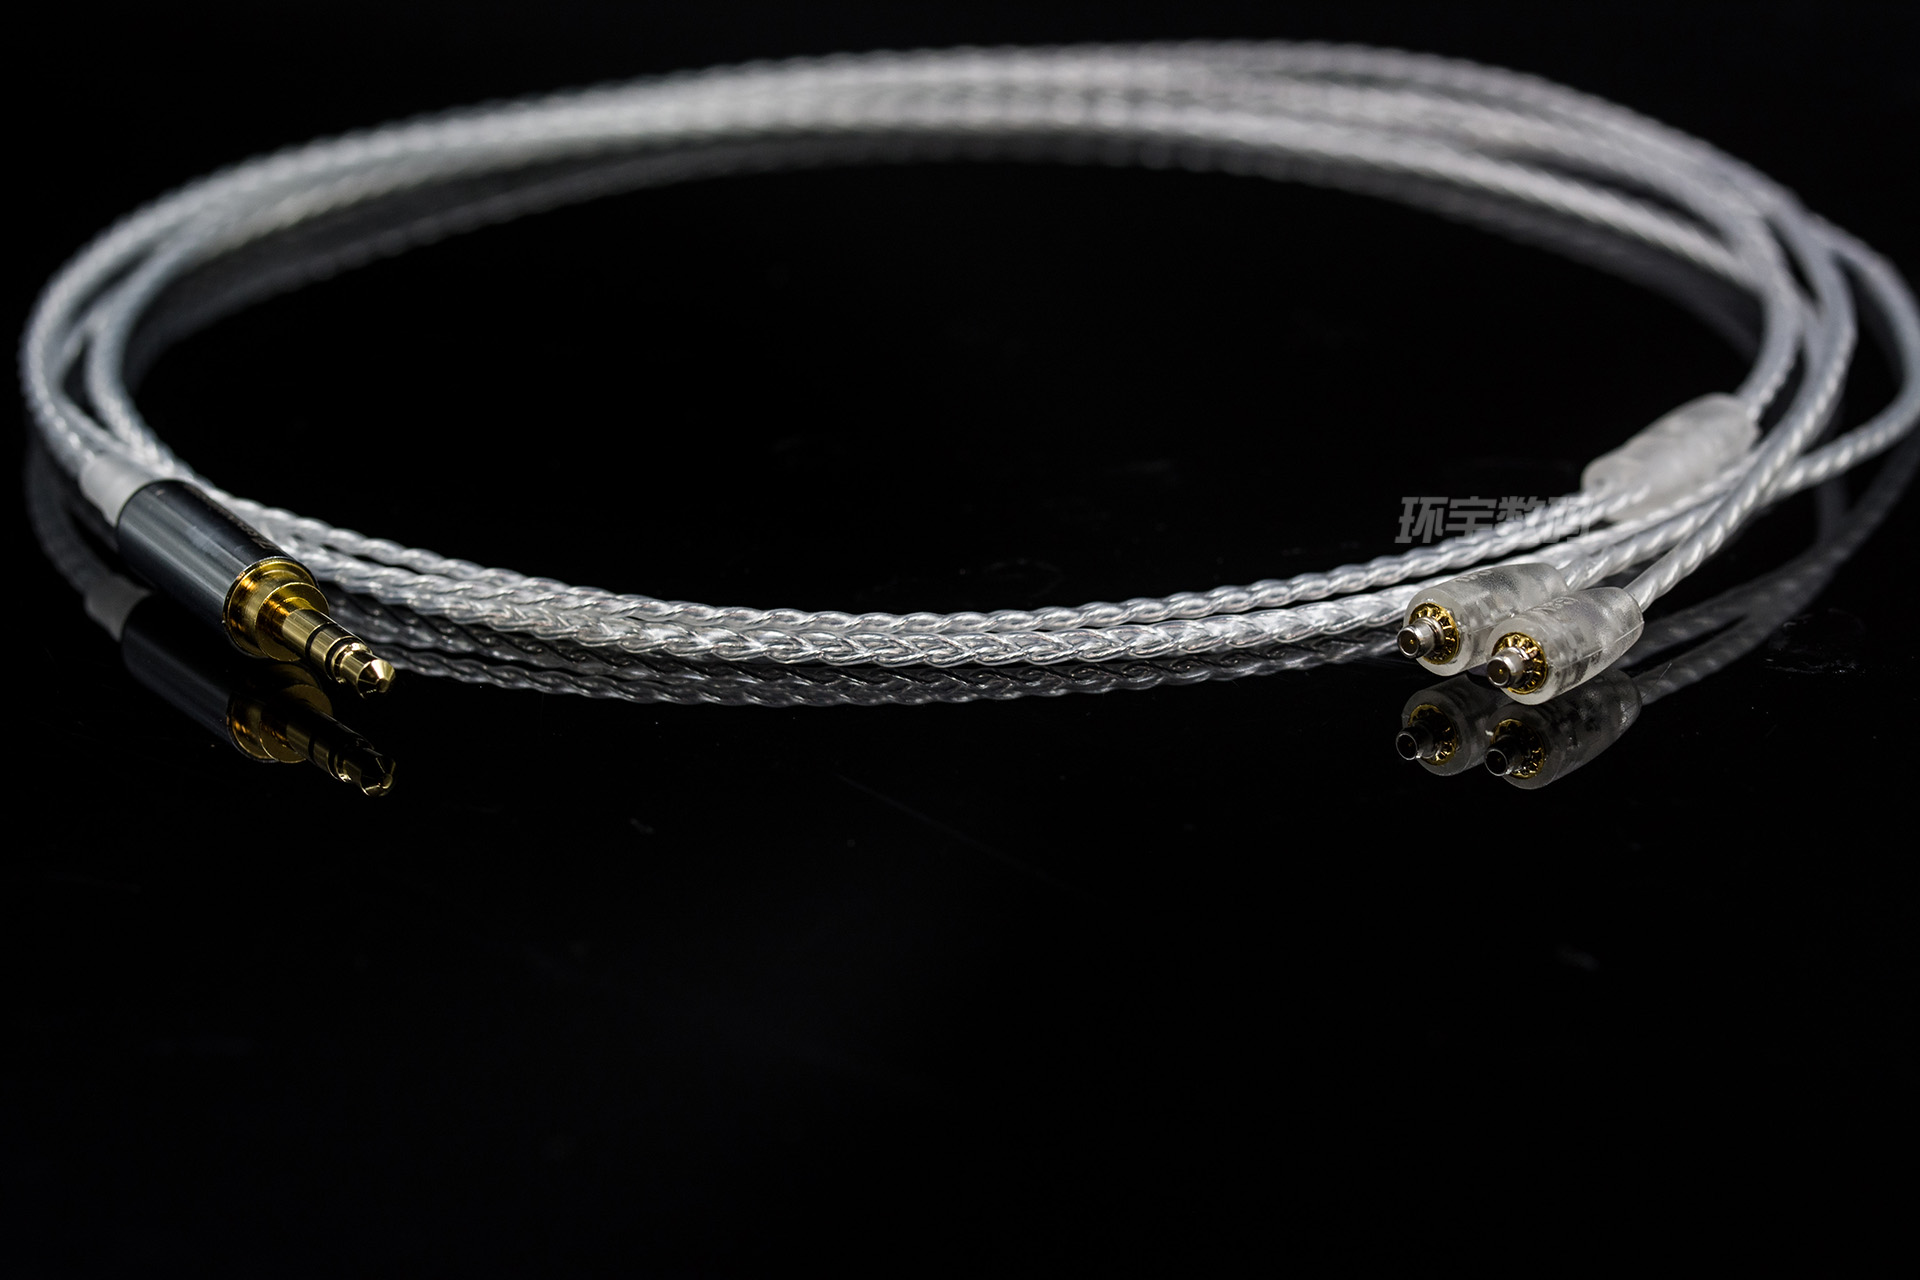 DIY Headphone Accessories SE535 Silver Plated Fever Headphone Cable 215 425 UE900